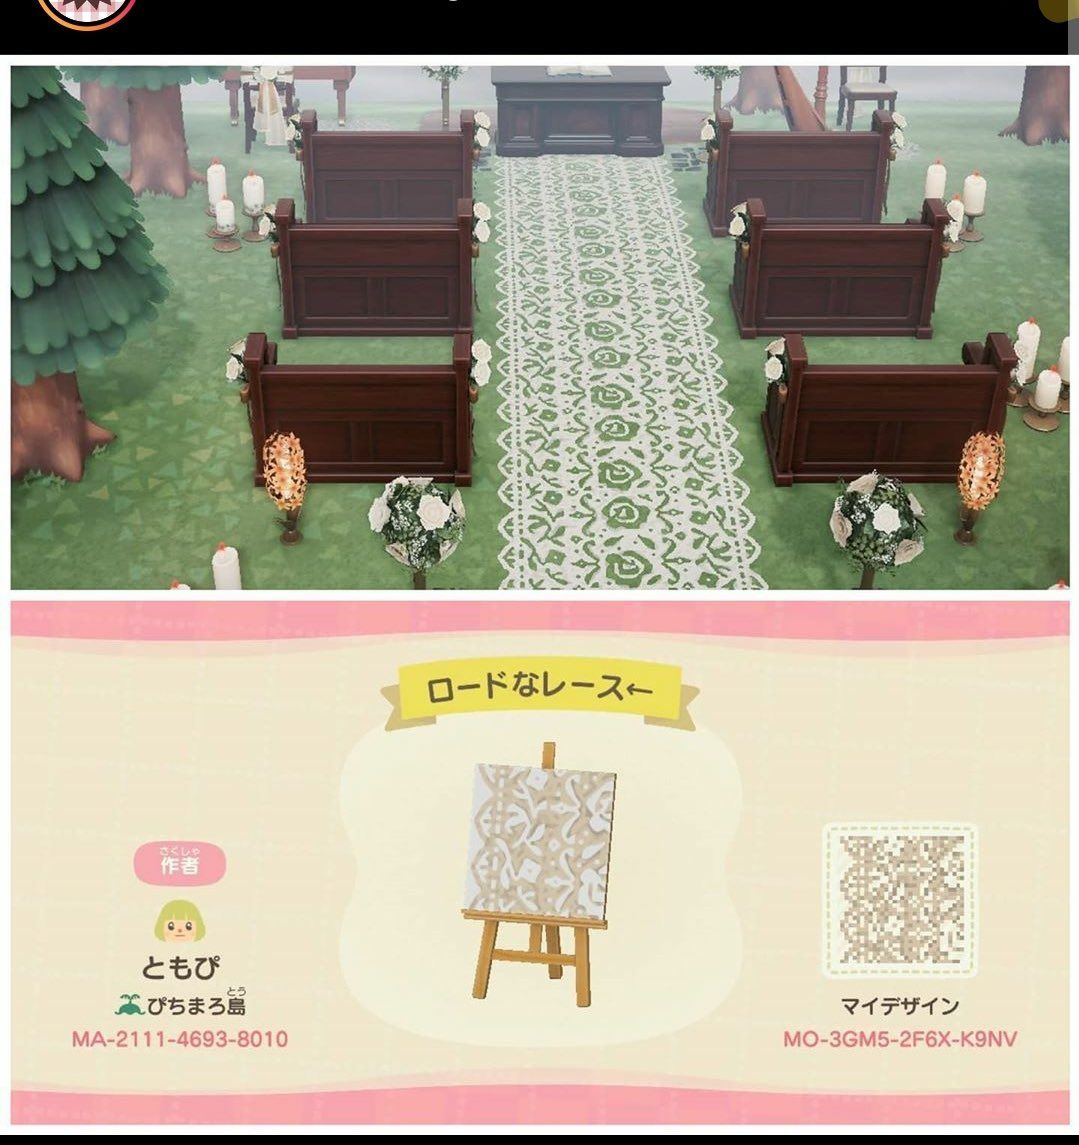 Acnh Designs On Twitter In 2020 Animal Crossing Qr Animal Crossing 3ds Animal Crossing